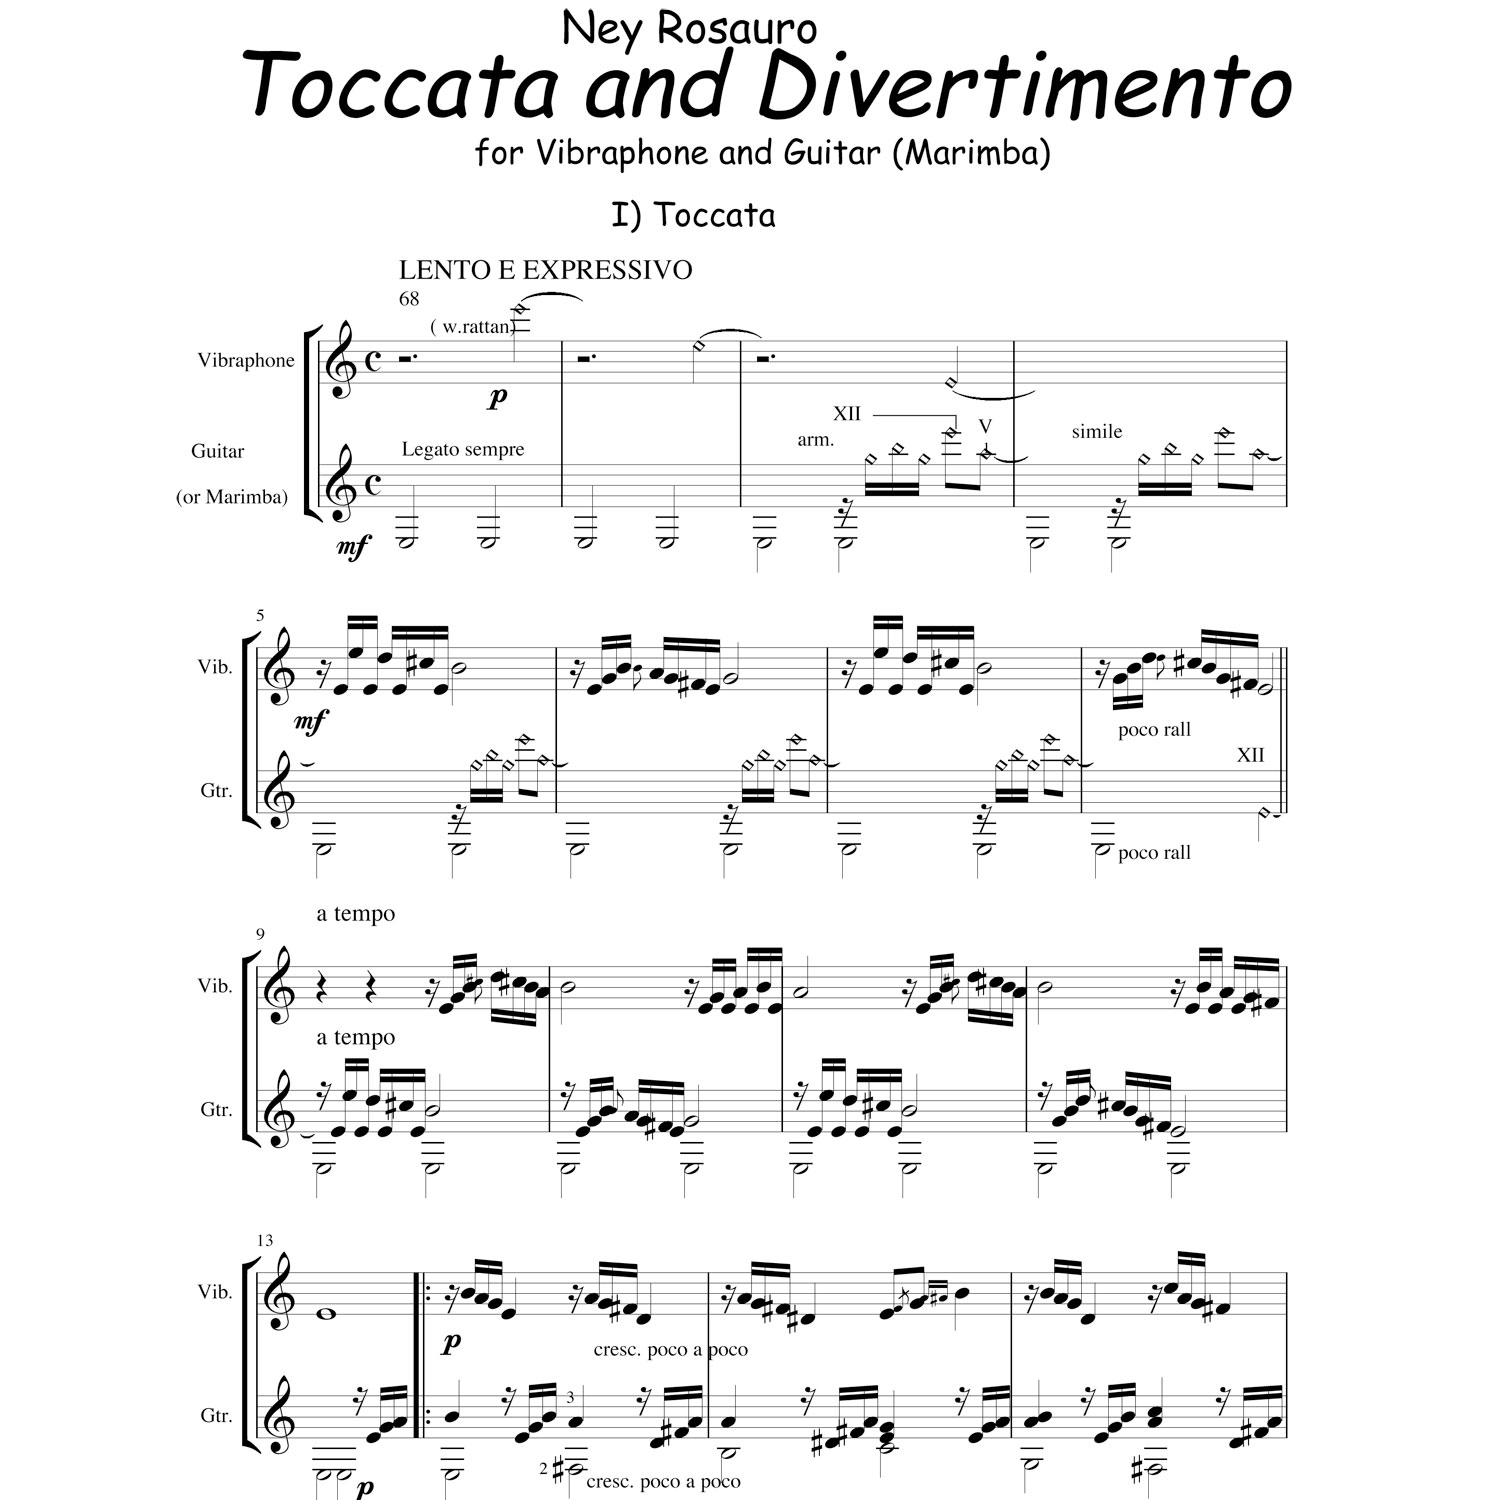 Toccata and Divertimento by Ney Rosauro